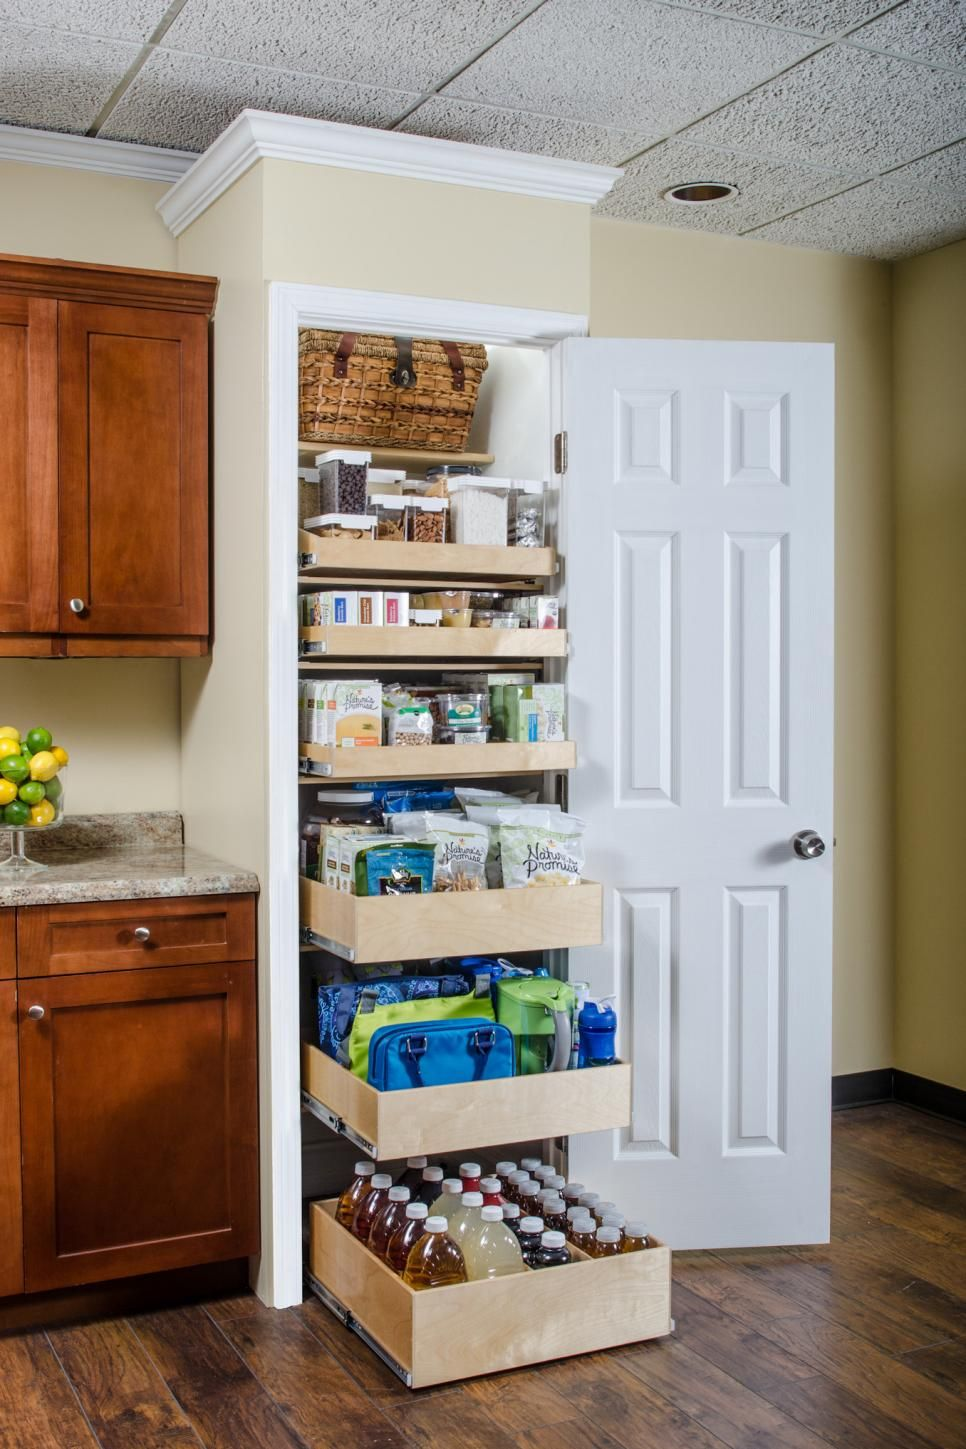 20 Best Pantry Organizers  For the Home  Kitchen